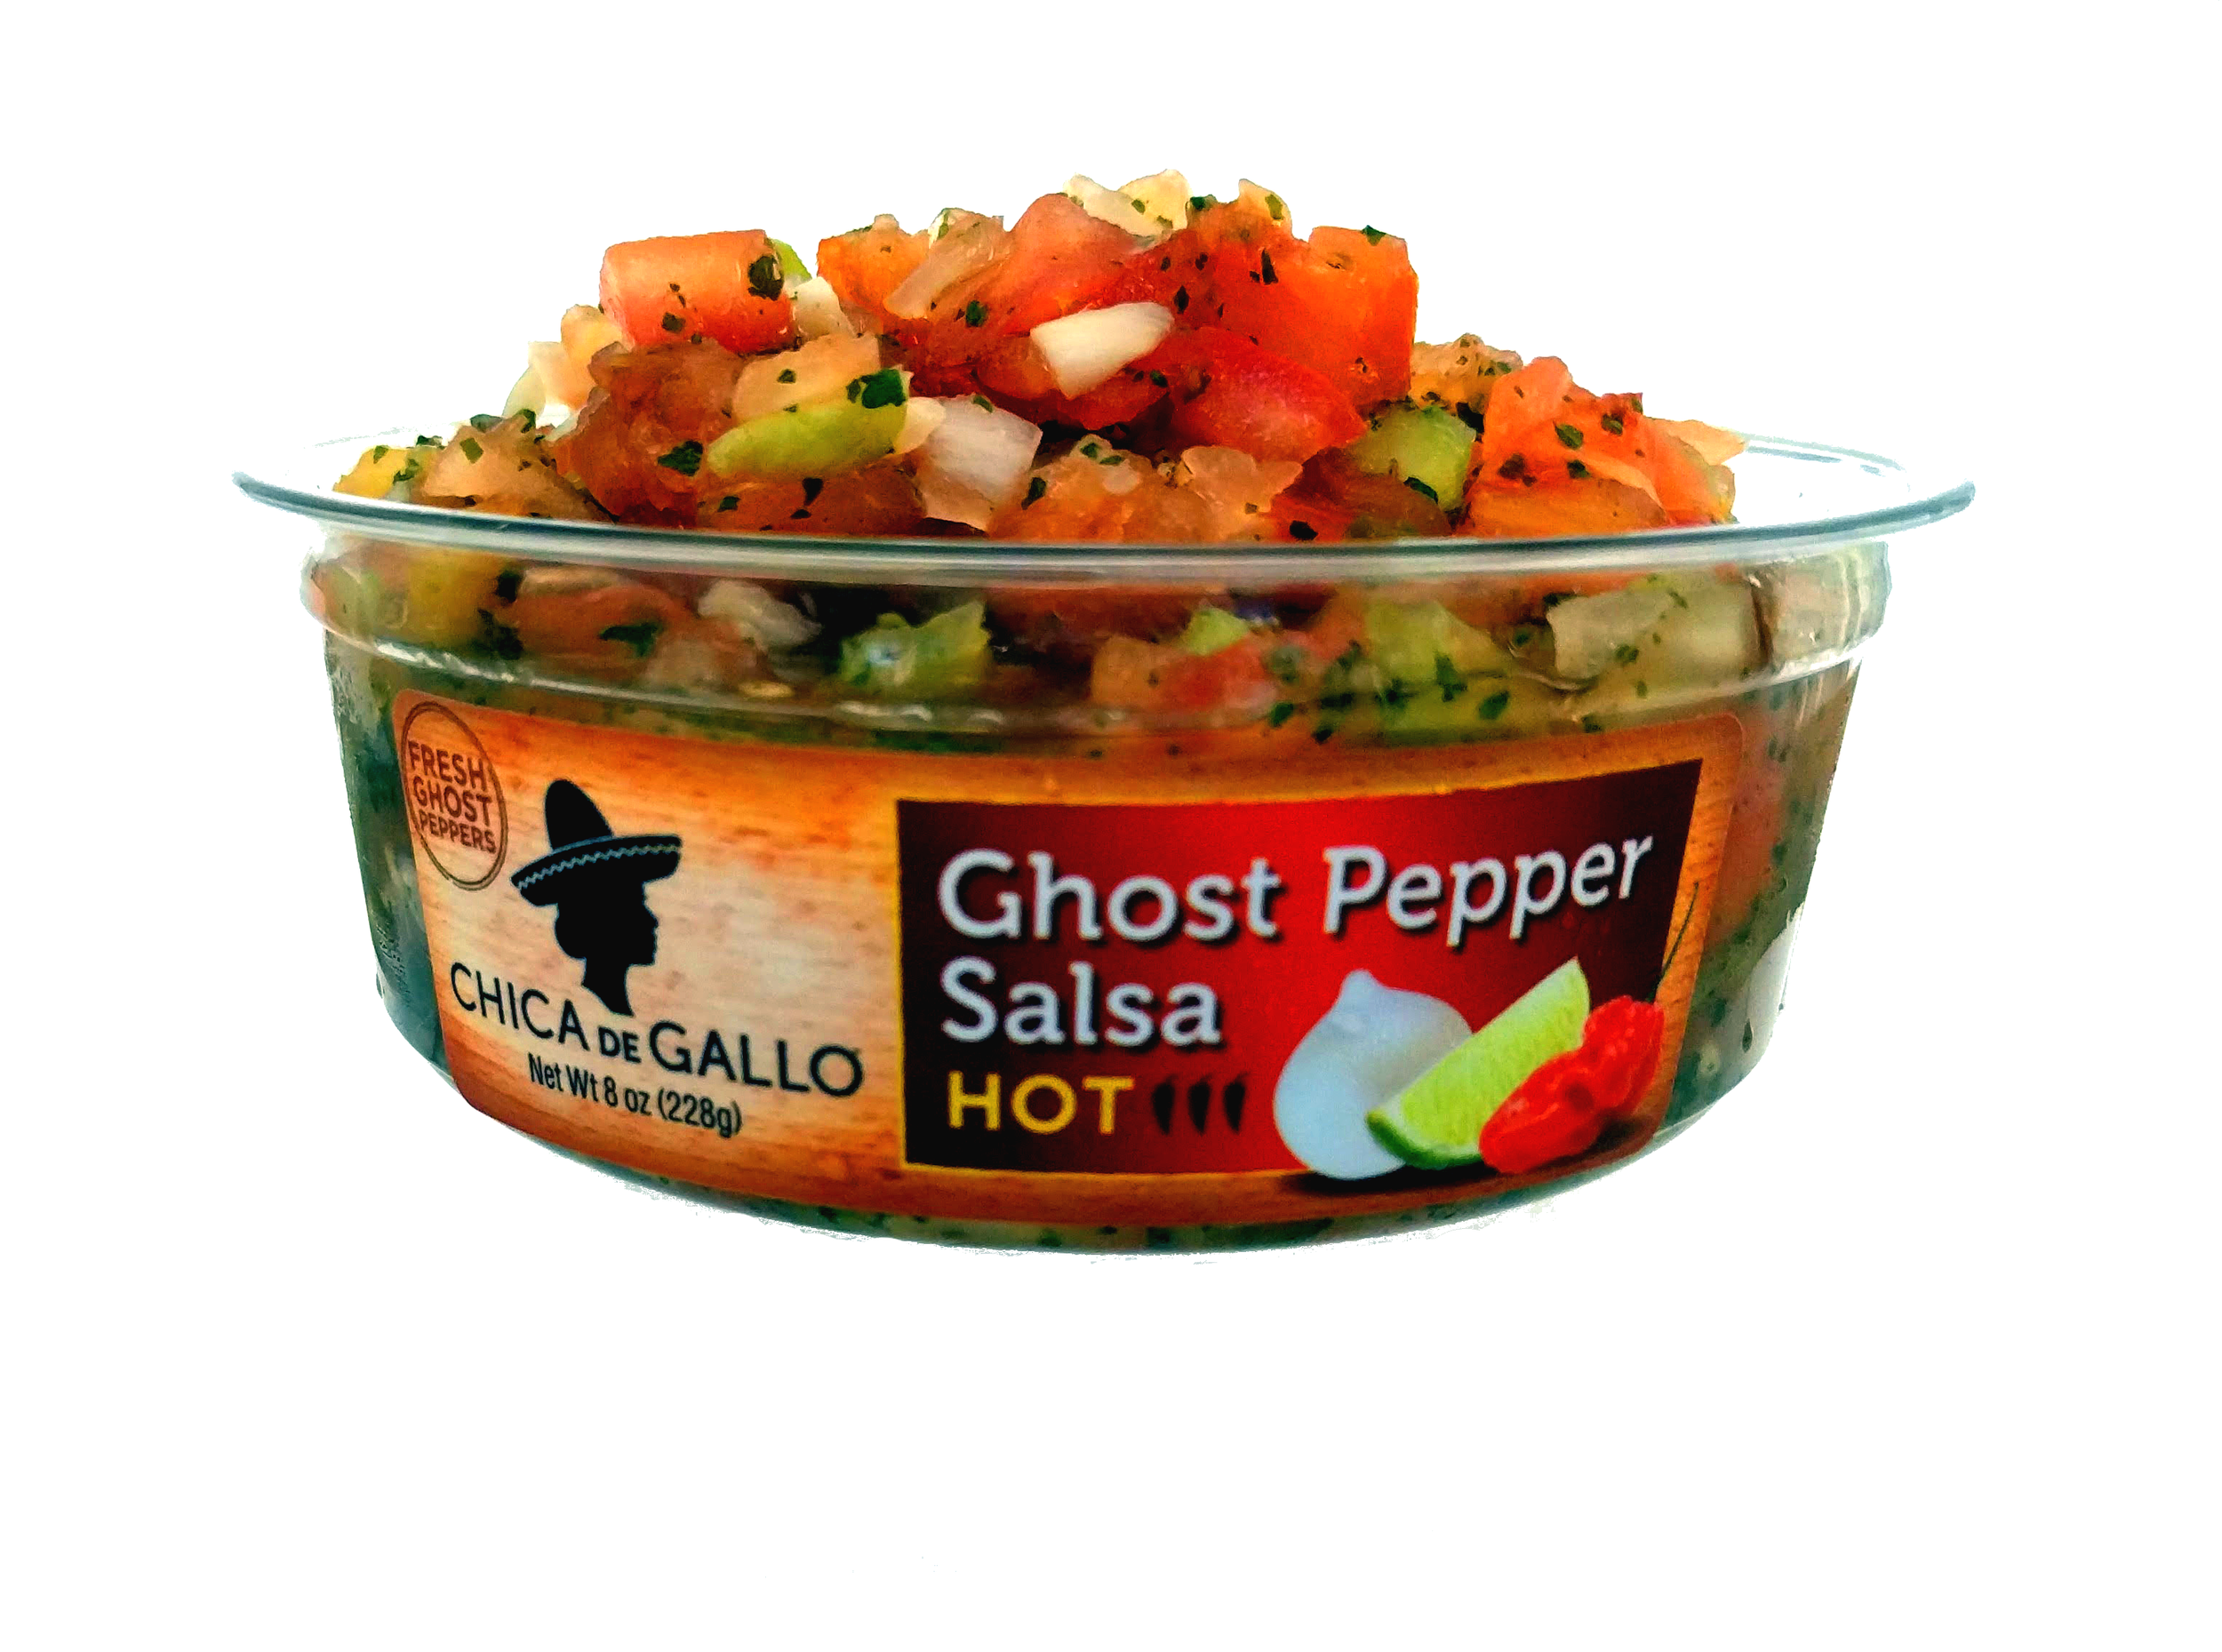 GHOST PEPPER SALSA - This salsa has just enough heat so that the fresh flavors still shine through the spice. Ingredients: Tomatoes, Onions, Jalapeño Pepper, Peppers, Lime Juice, Garlic, Sea Salt, Cilantro, Ghost Pepper